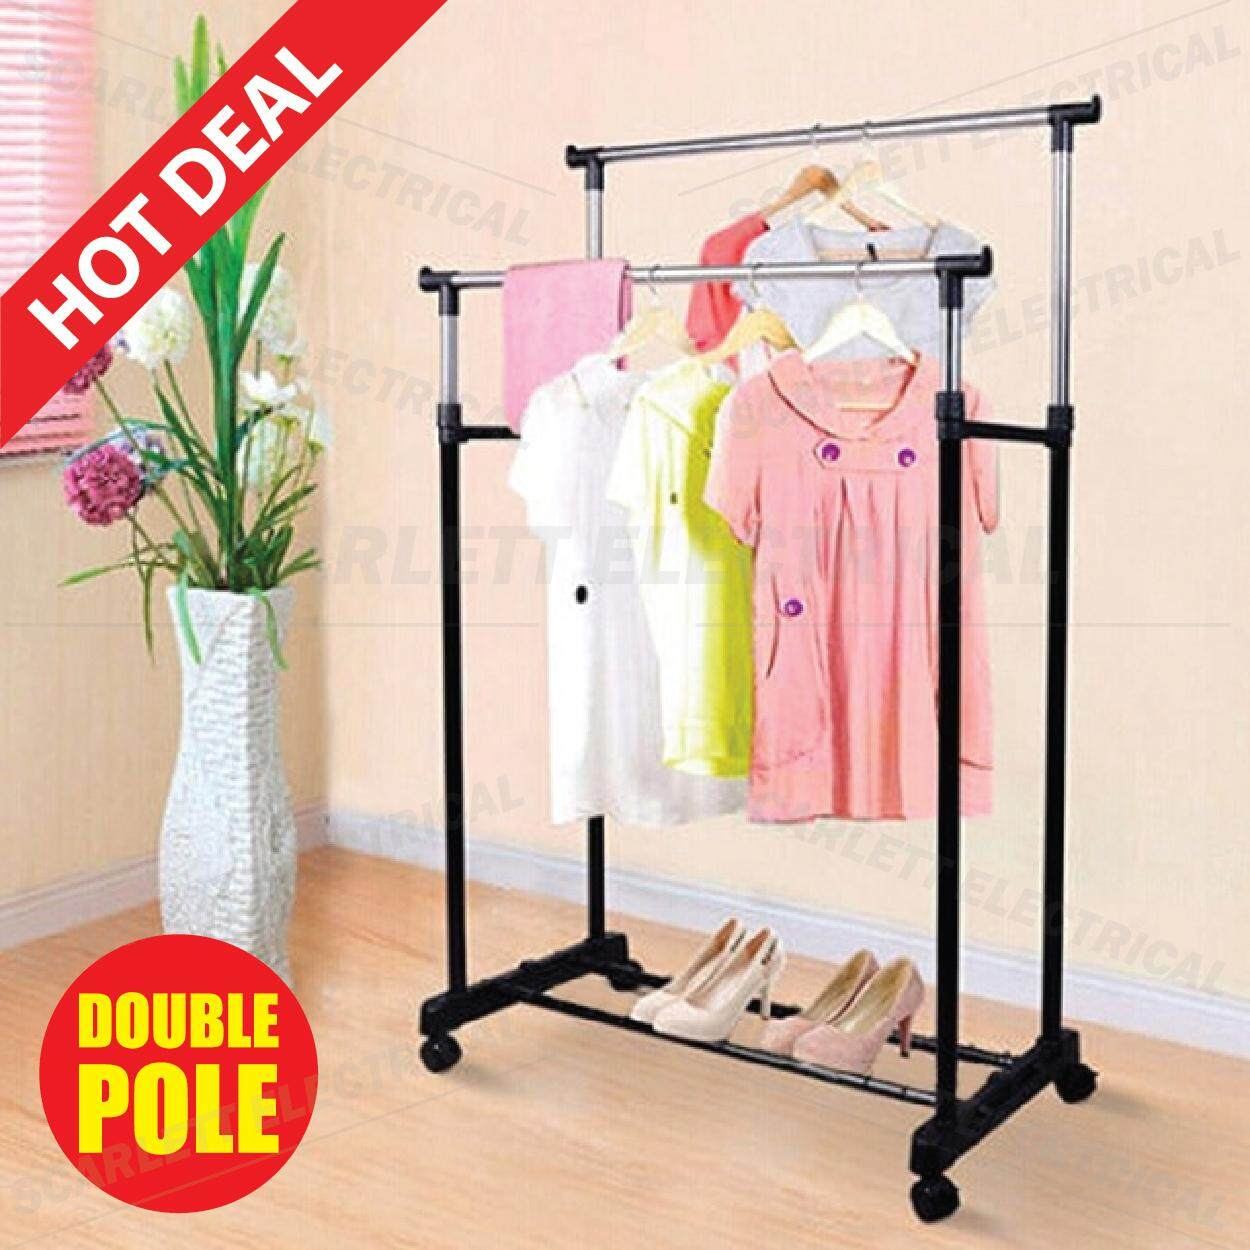 Home Clothes Line Drying Racks